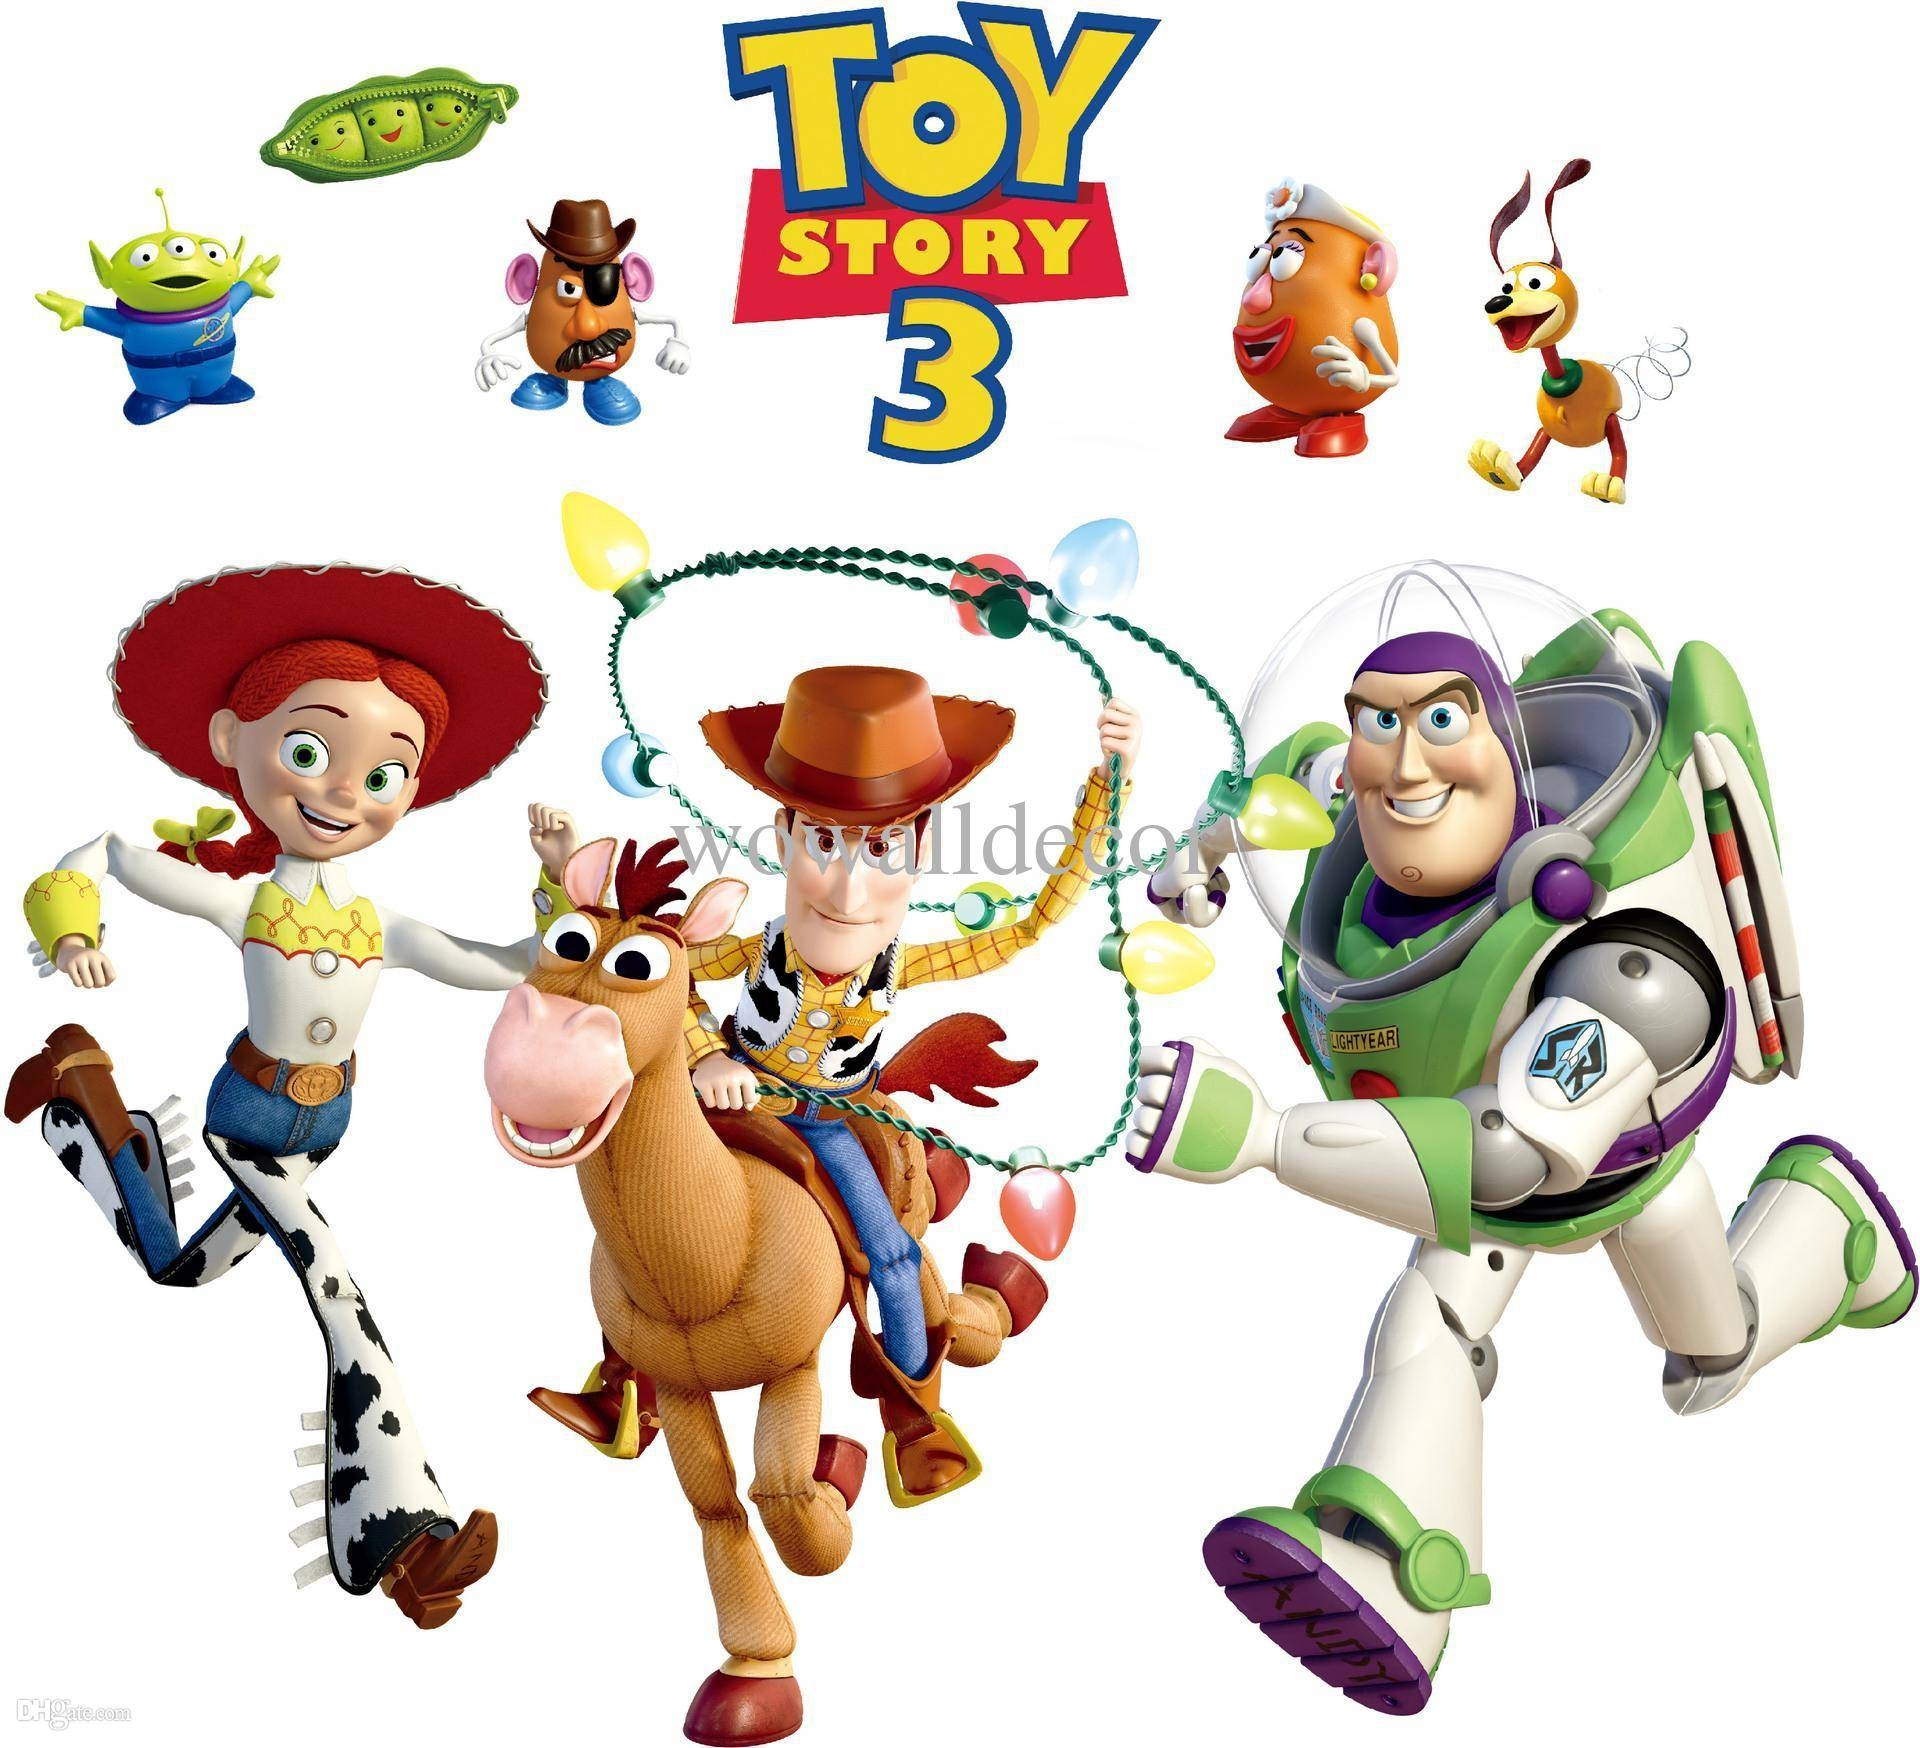 Removable Pvc Toy Story 3 Woody Bullseye Wall Sticker For Kids Inside Recent Toy Story Wall Art (View 20 of 30)